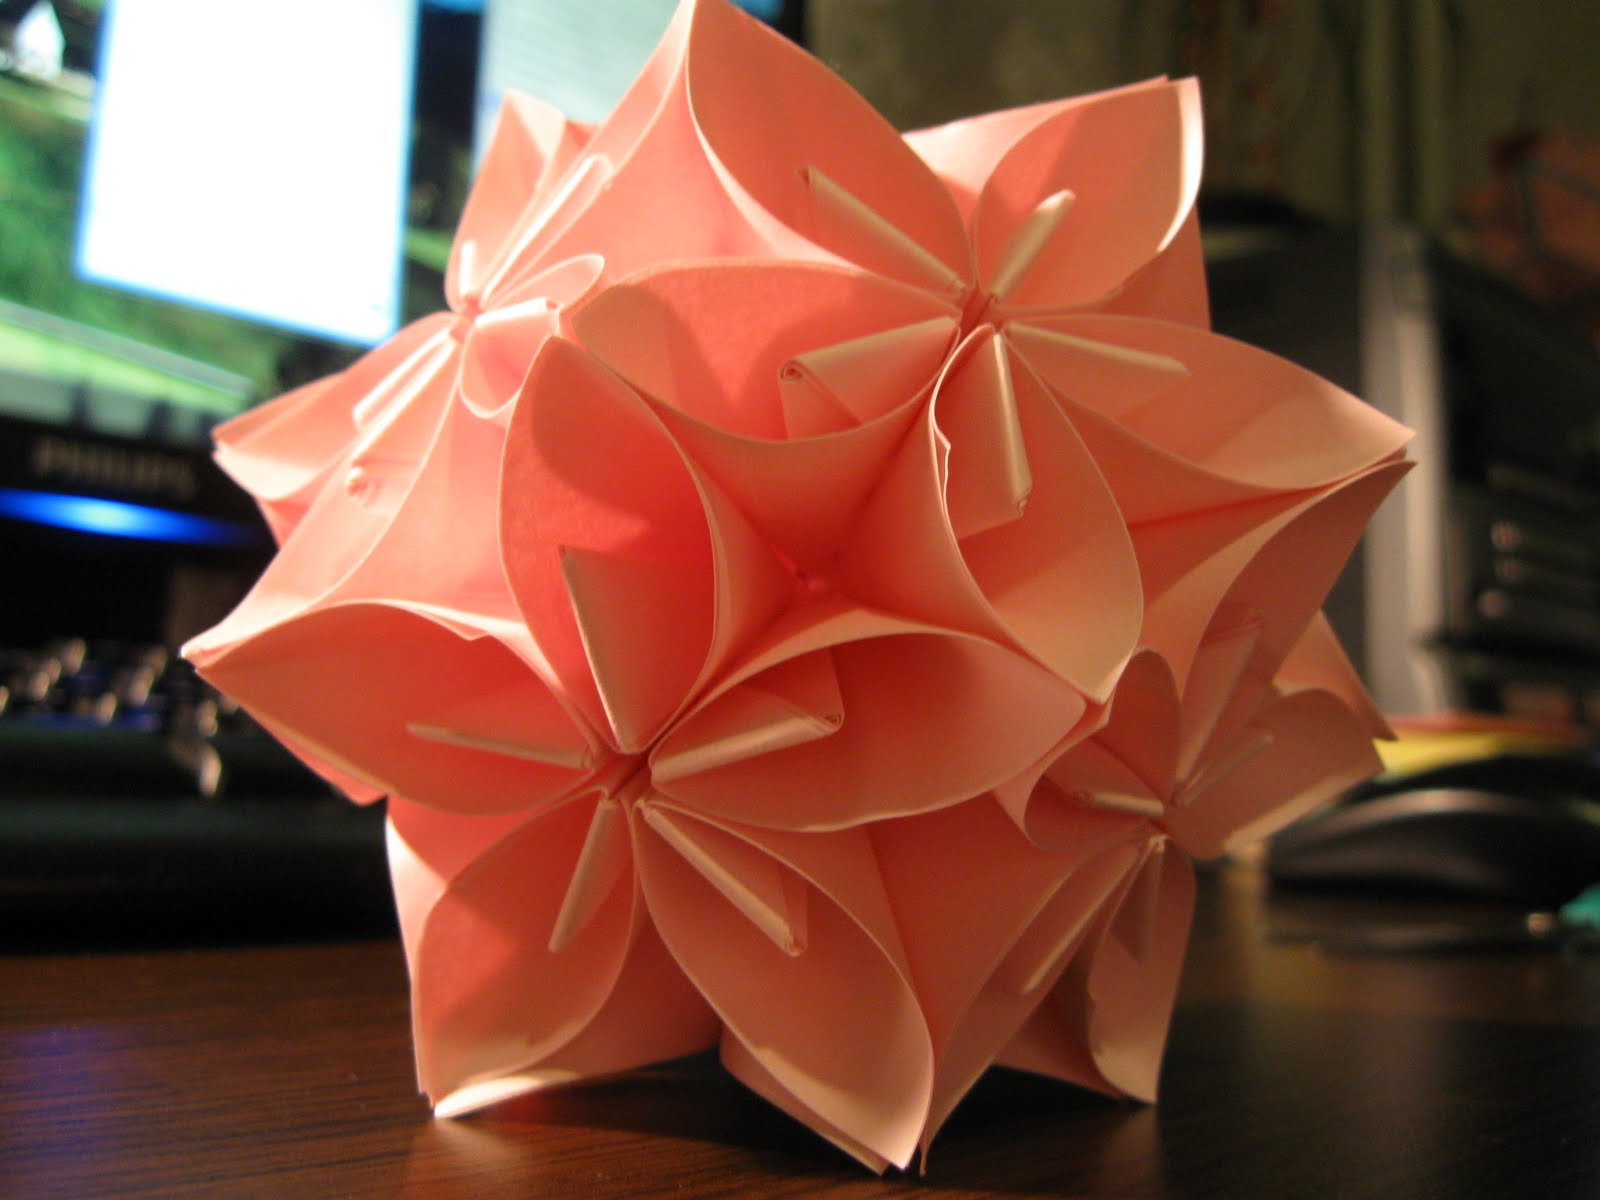 Alpha romeo the origami flower the origami flower are you bored of hard ware science then lets try this soft paper science mightylinksfo